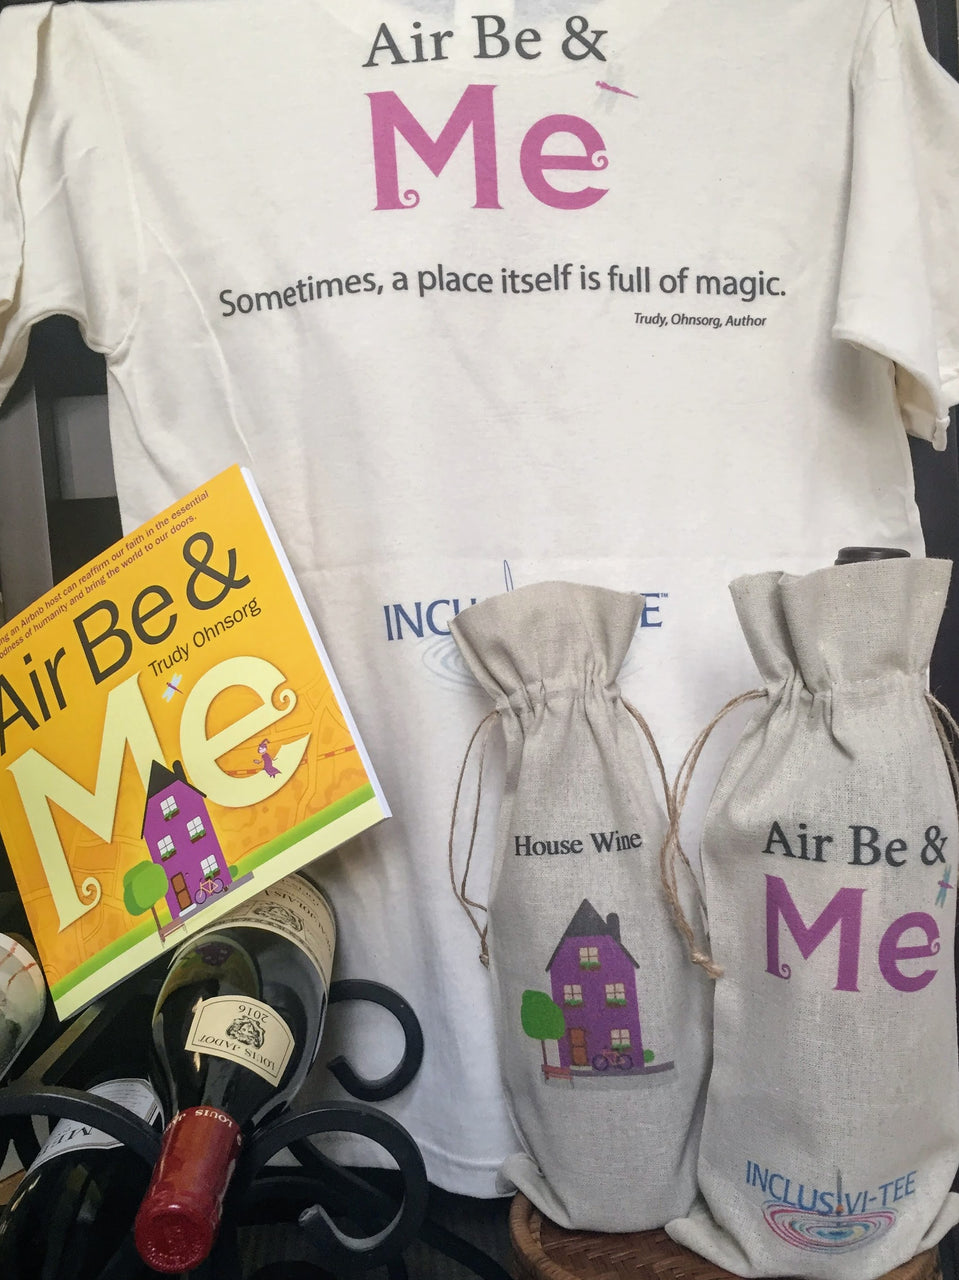 Air Be & Me T-shirt